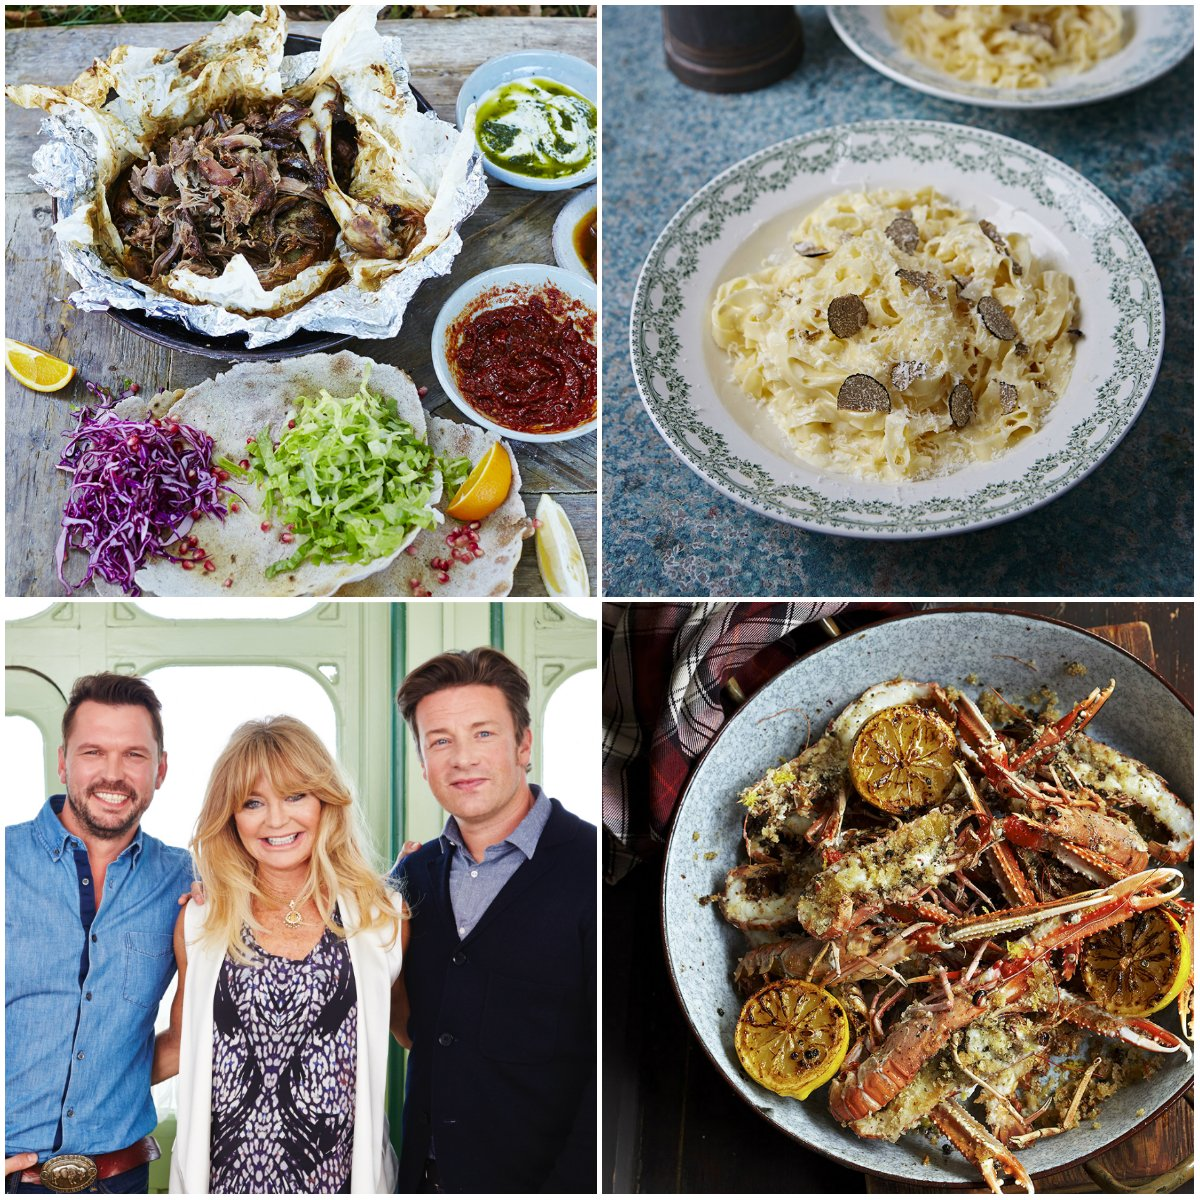 On now guys!! #FridayNightFeast over on @Channel4 https://t.co/7HKtPJRGzN